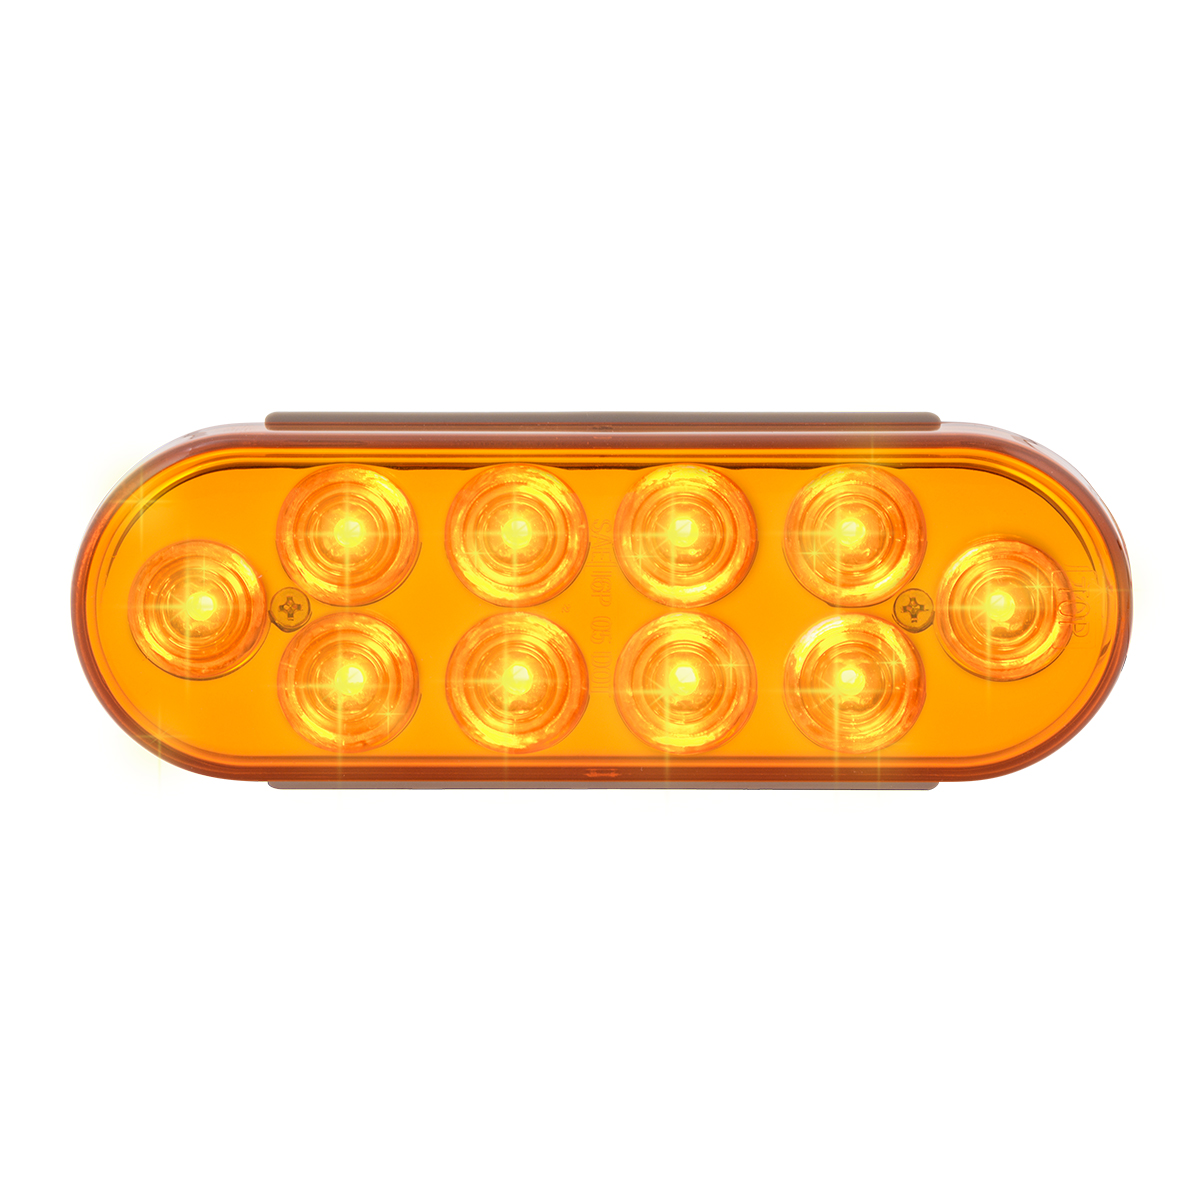 76860 Oval Mega 10 Plus LED Light in Amber/Amber